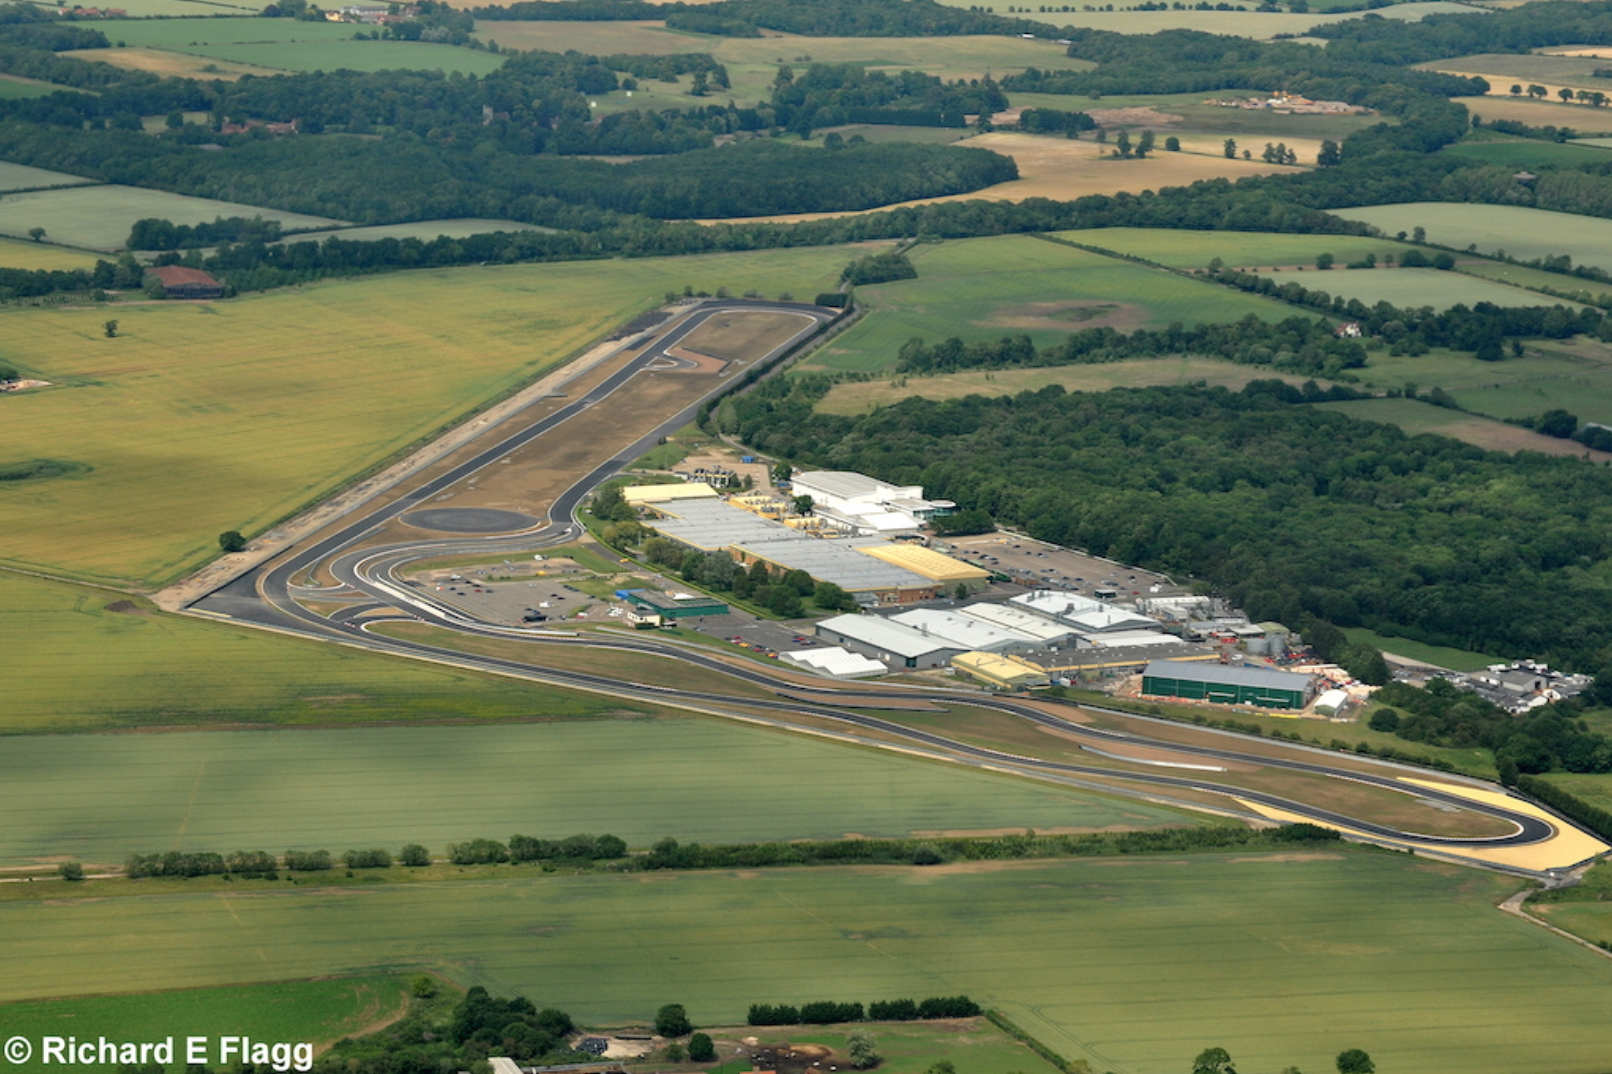 008RAF Hethel Airfield - 24 June 2011.png